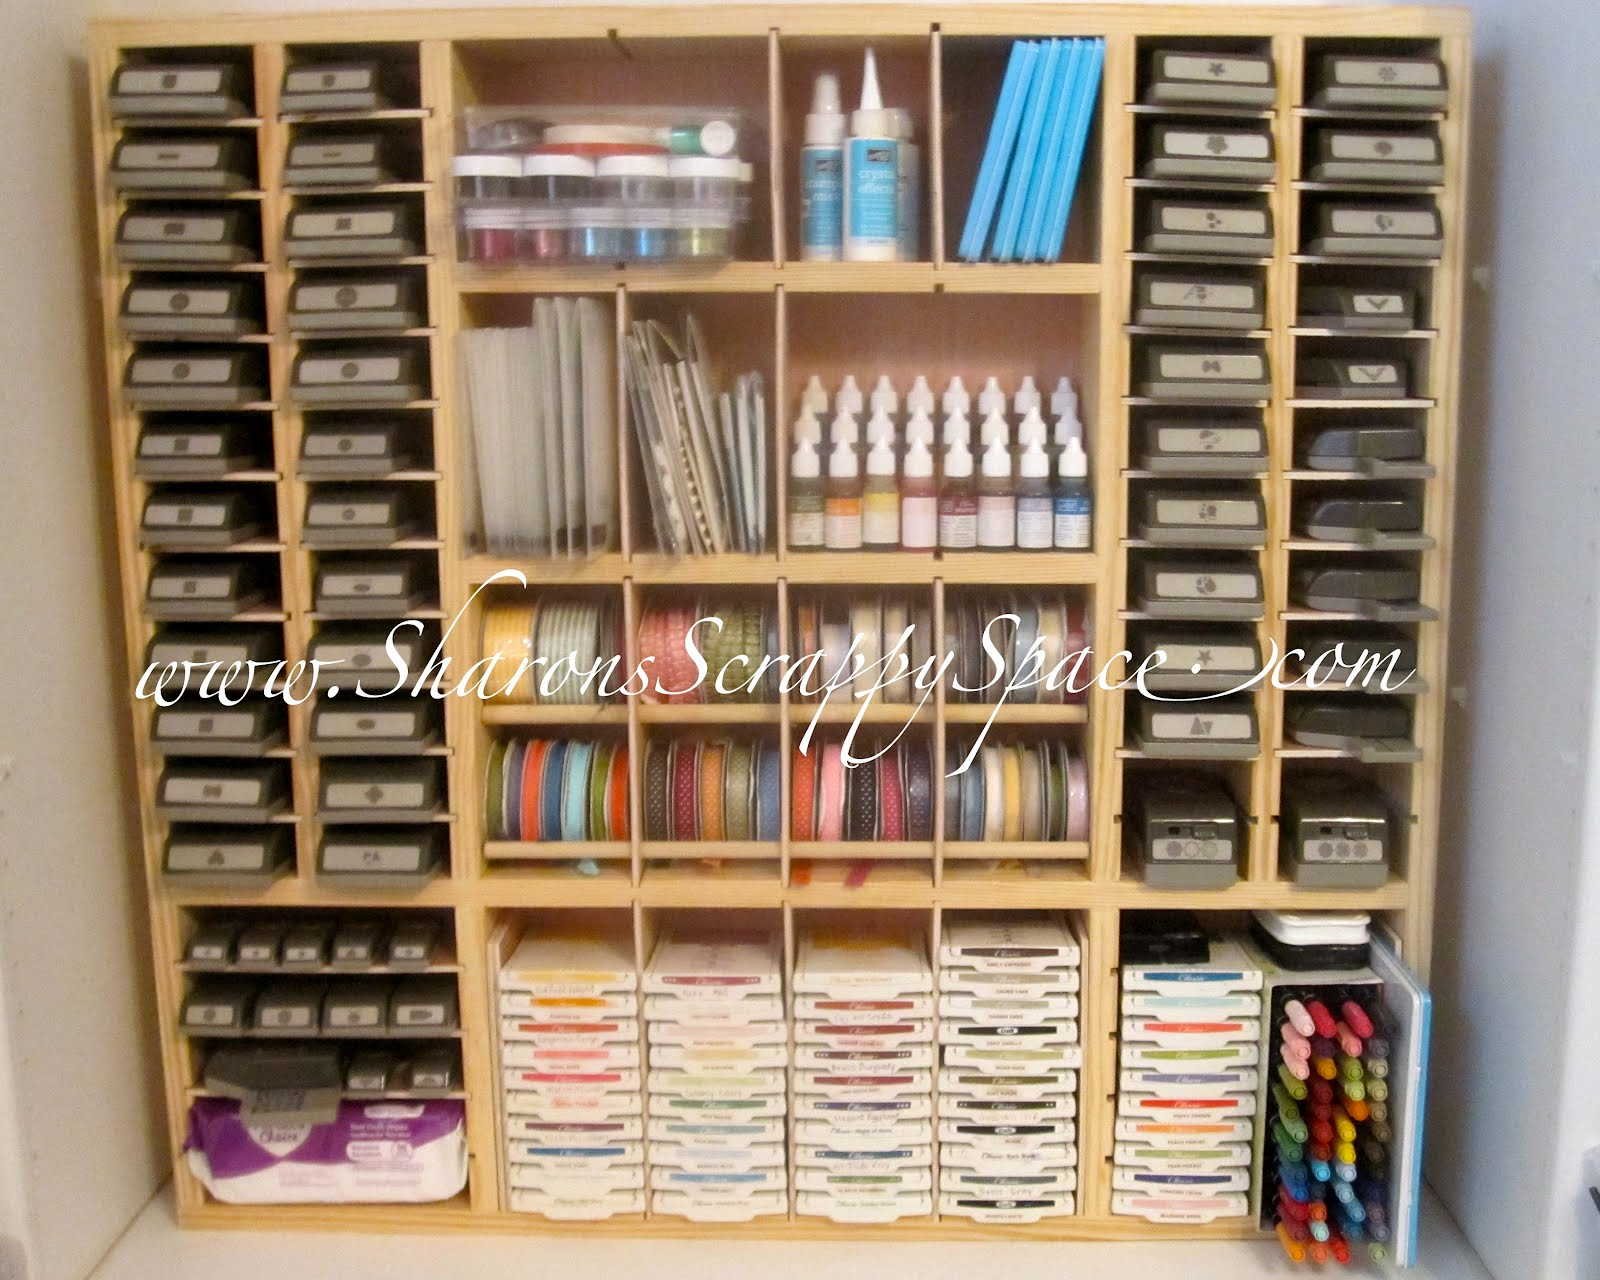 Stampin Up Scrapbooking Storage We Know How To Do It